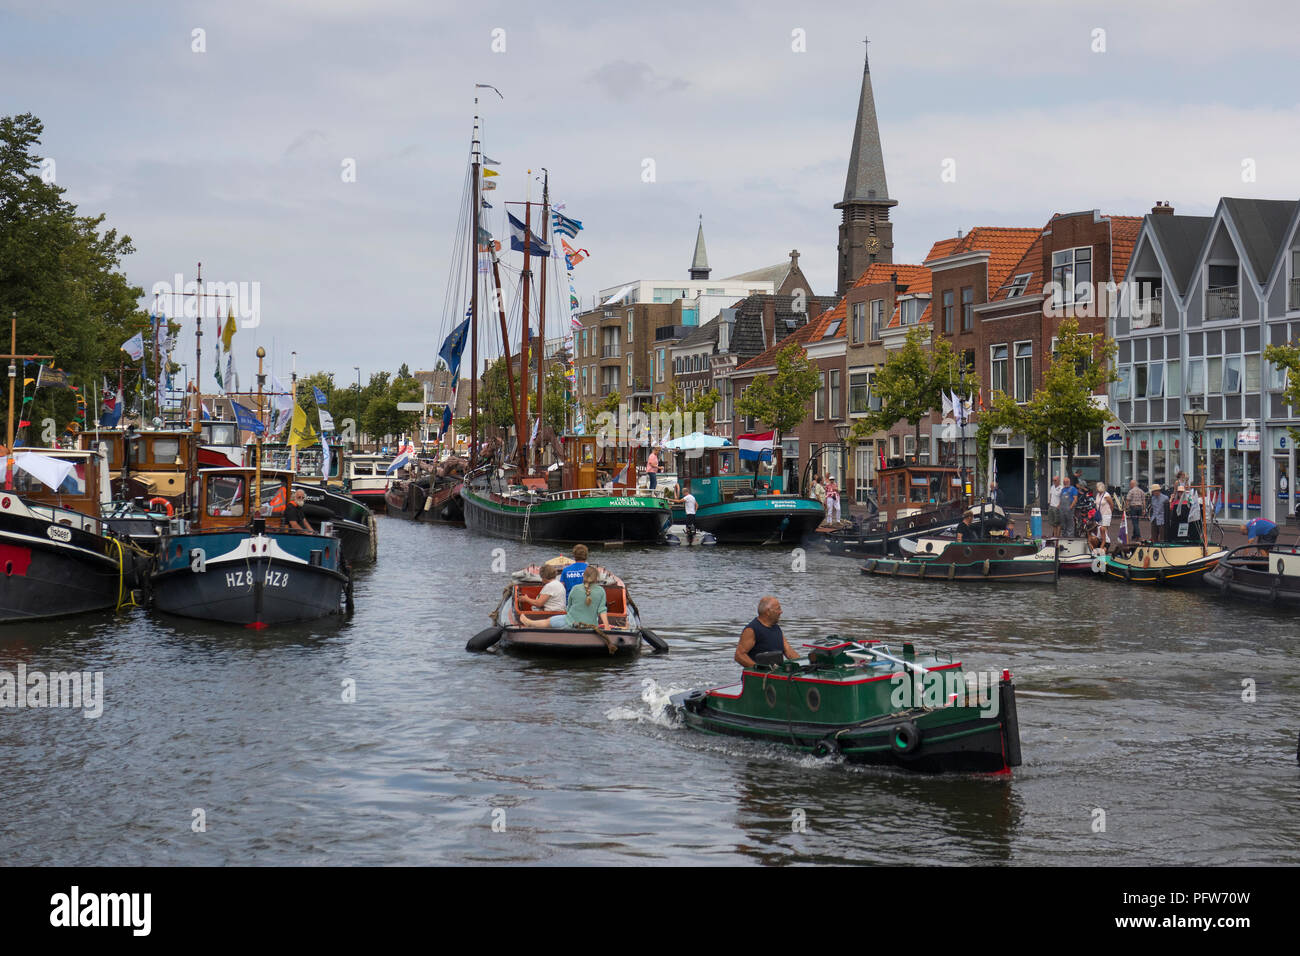 Leiden, Netherlands - July 28, 2018: Historical opduwers or opdrukkers, small tug- or towboats, on the canal during Sail Leiden 2018 - Stock Image